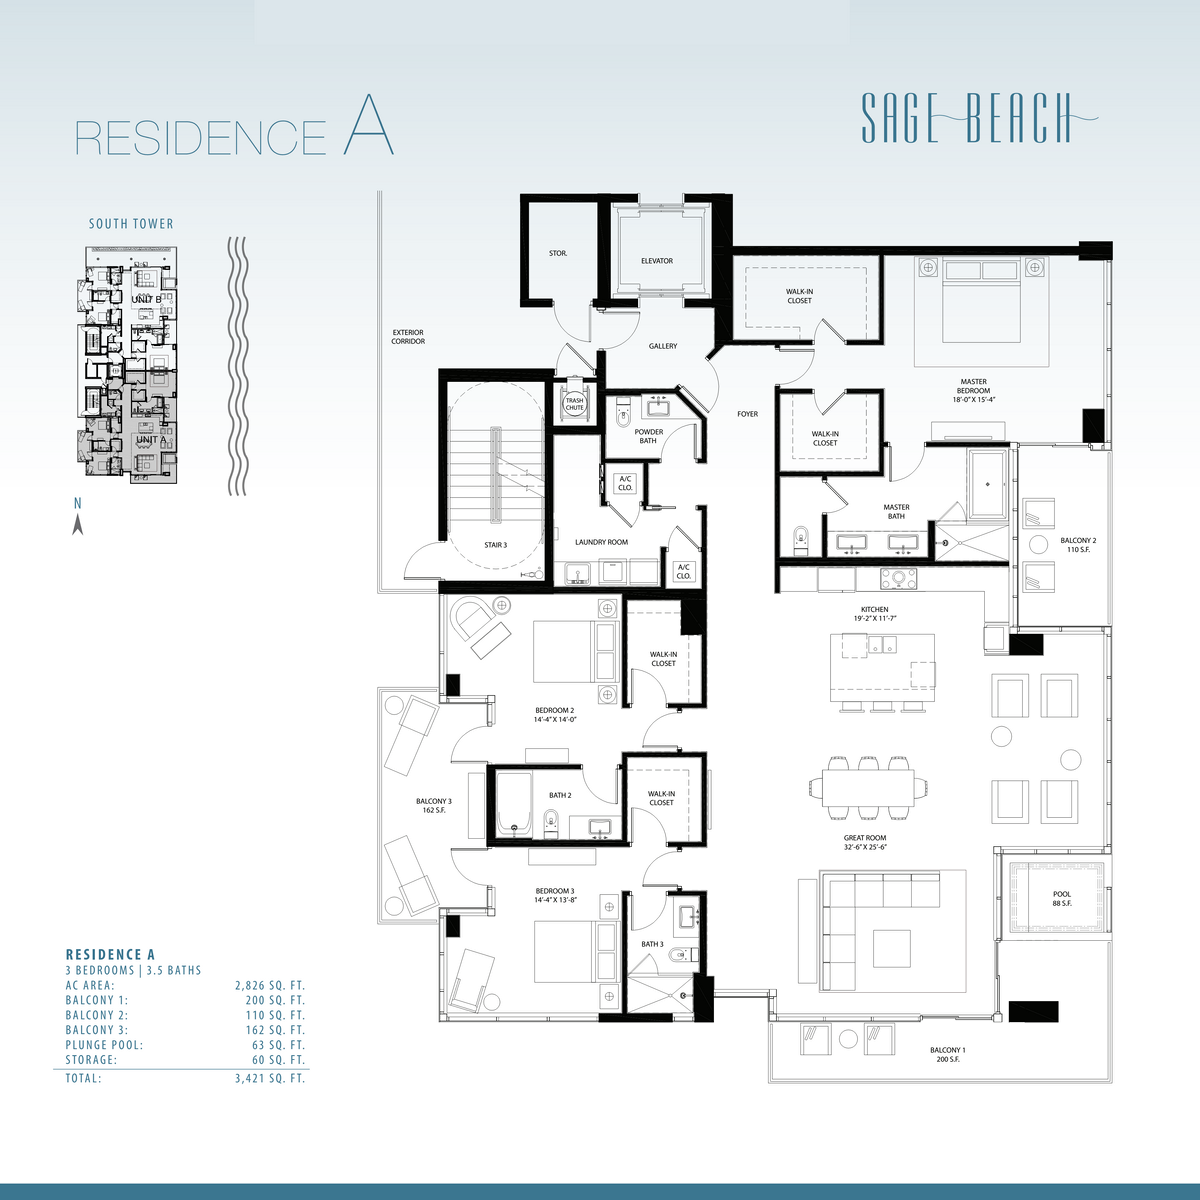 Sage Beach - Floorplan 4